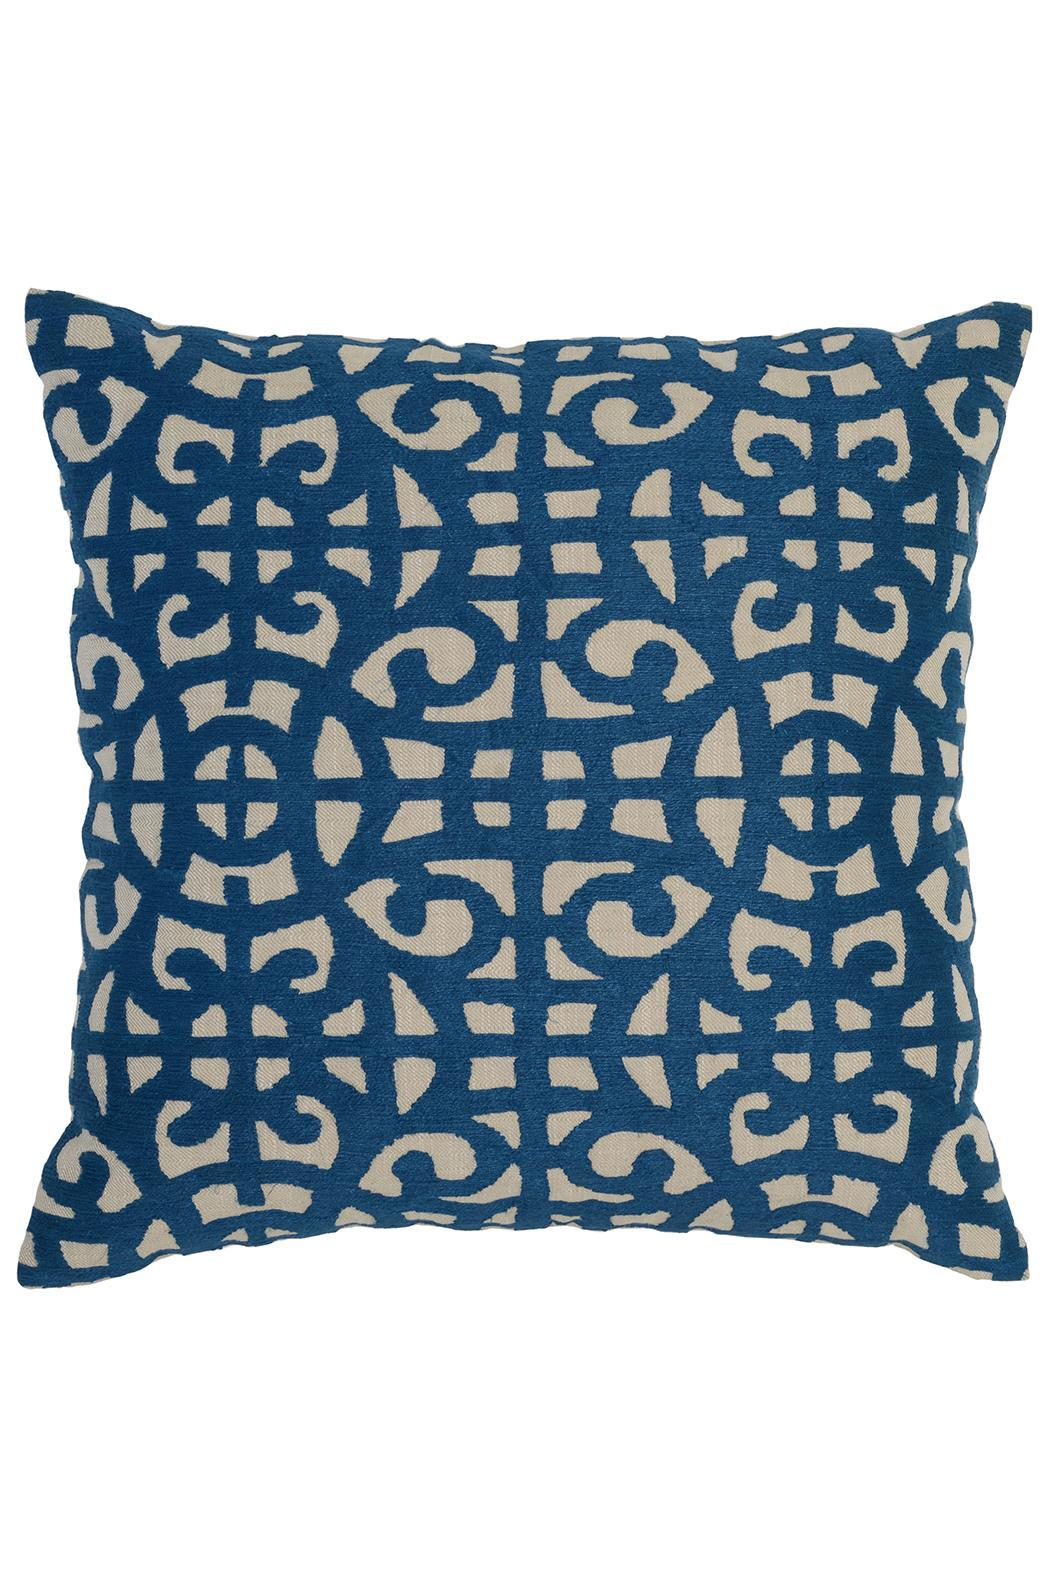 Villa home collection ace marine pillow from atlanta by for Villa home collection pillows